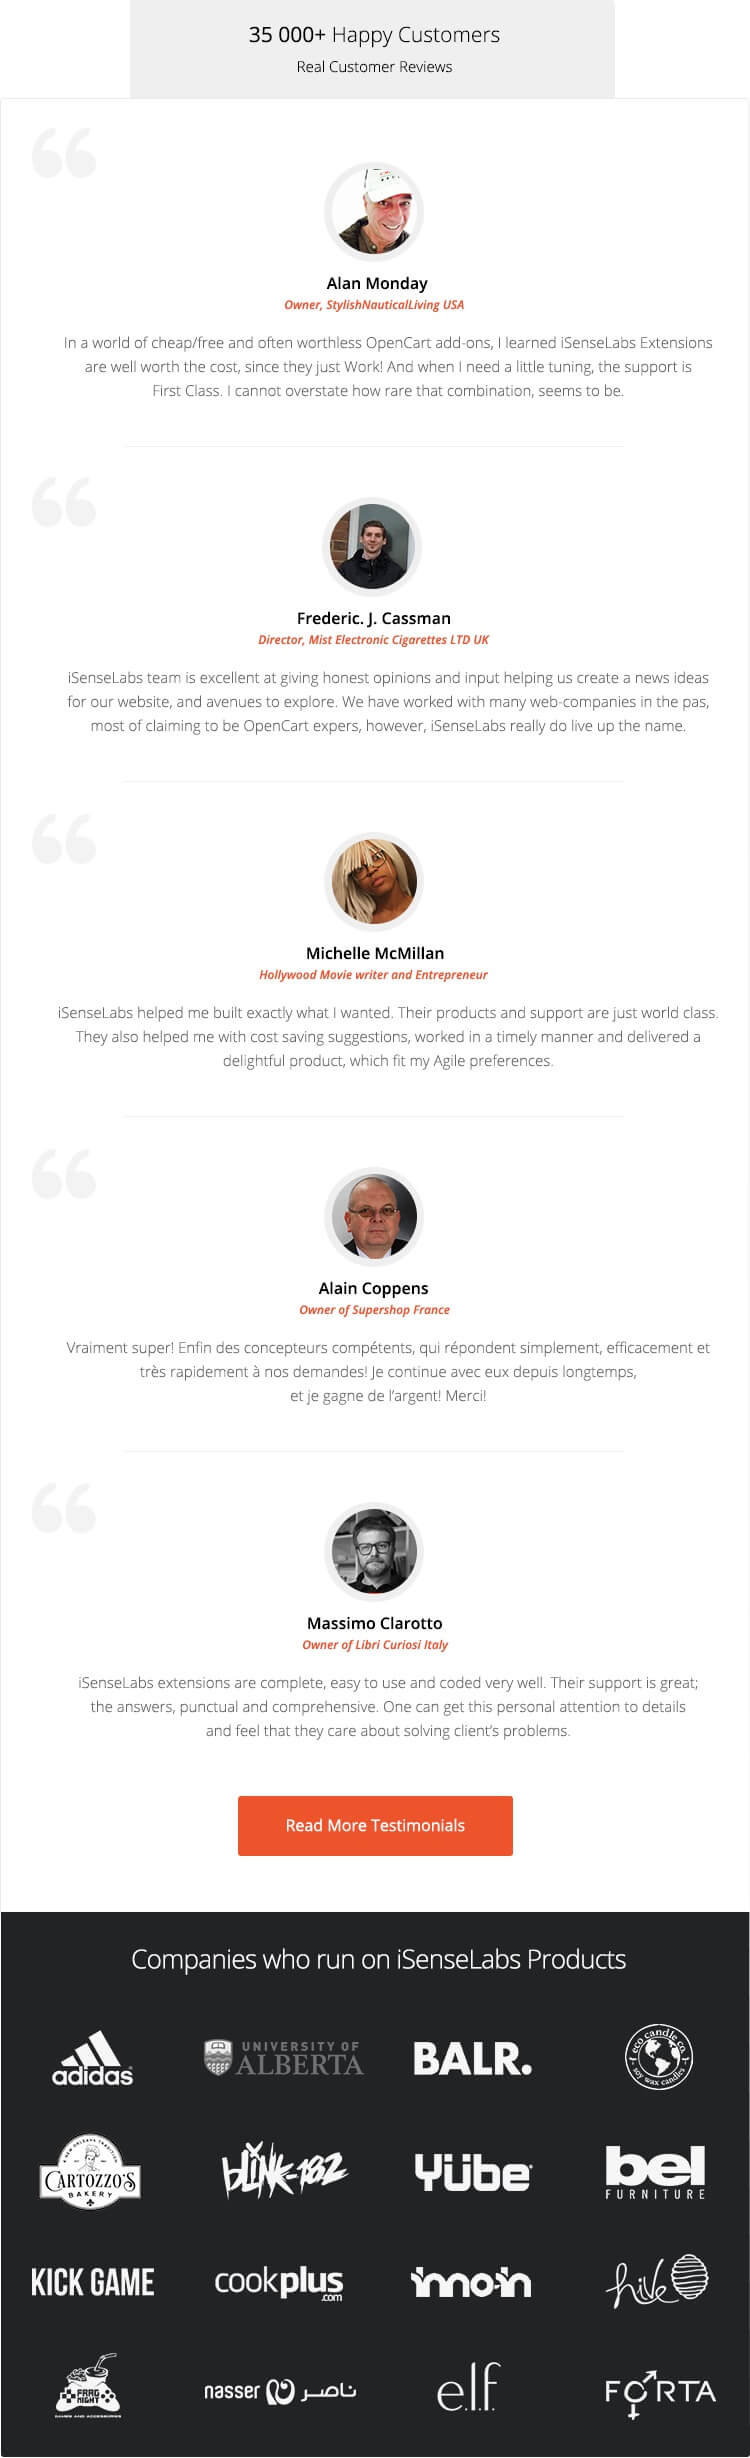 isenselabs-customer-testimonials